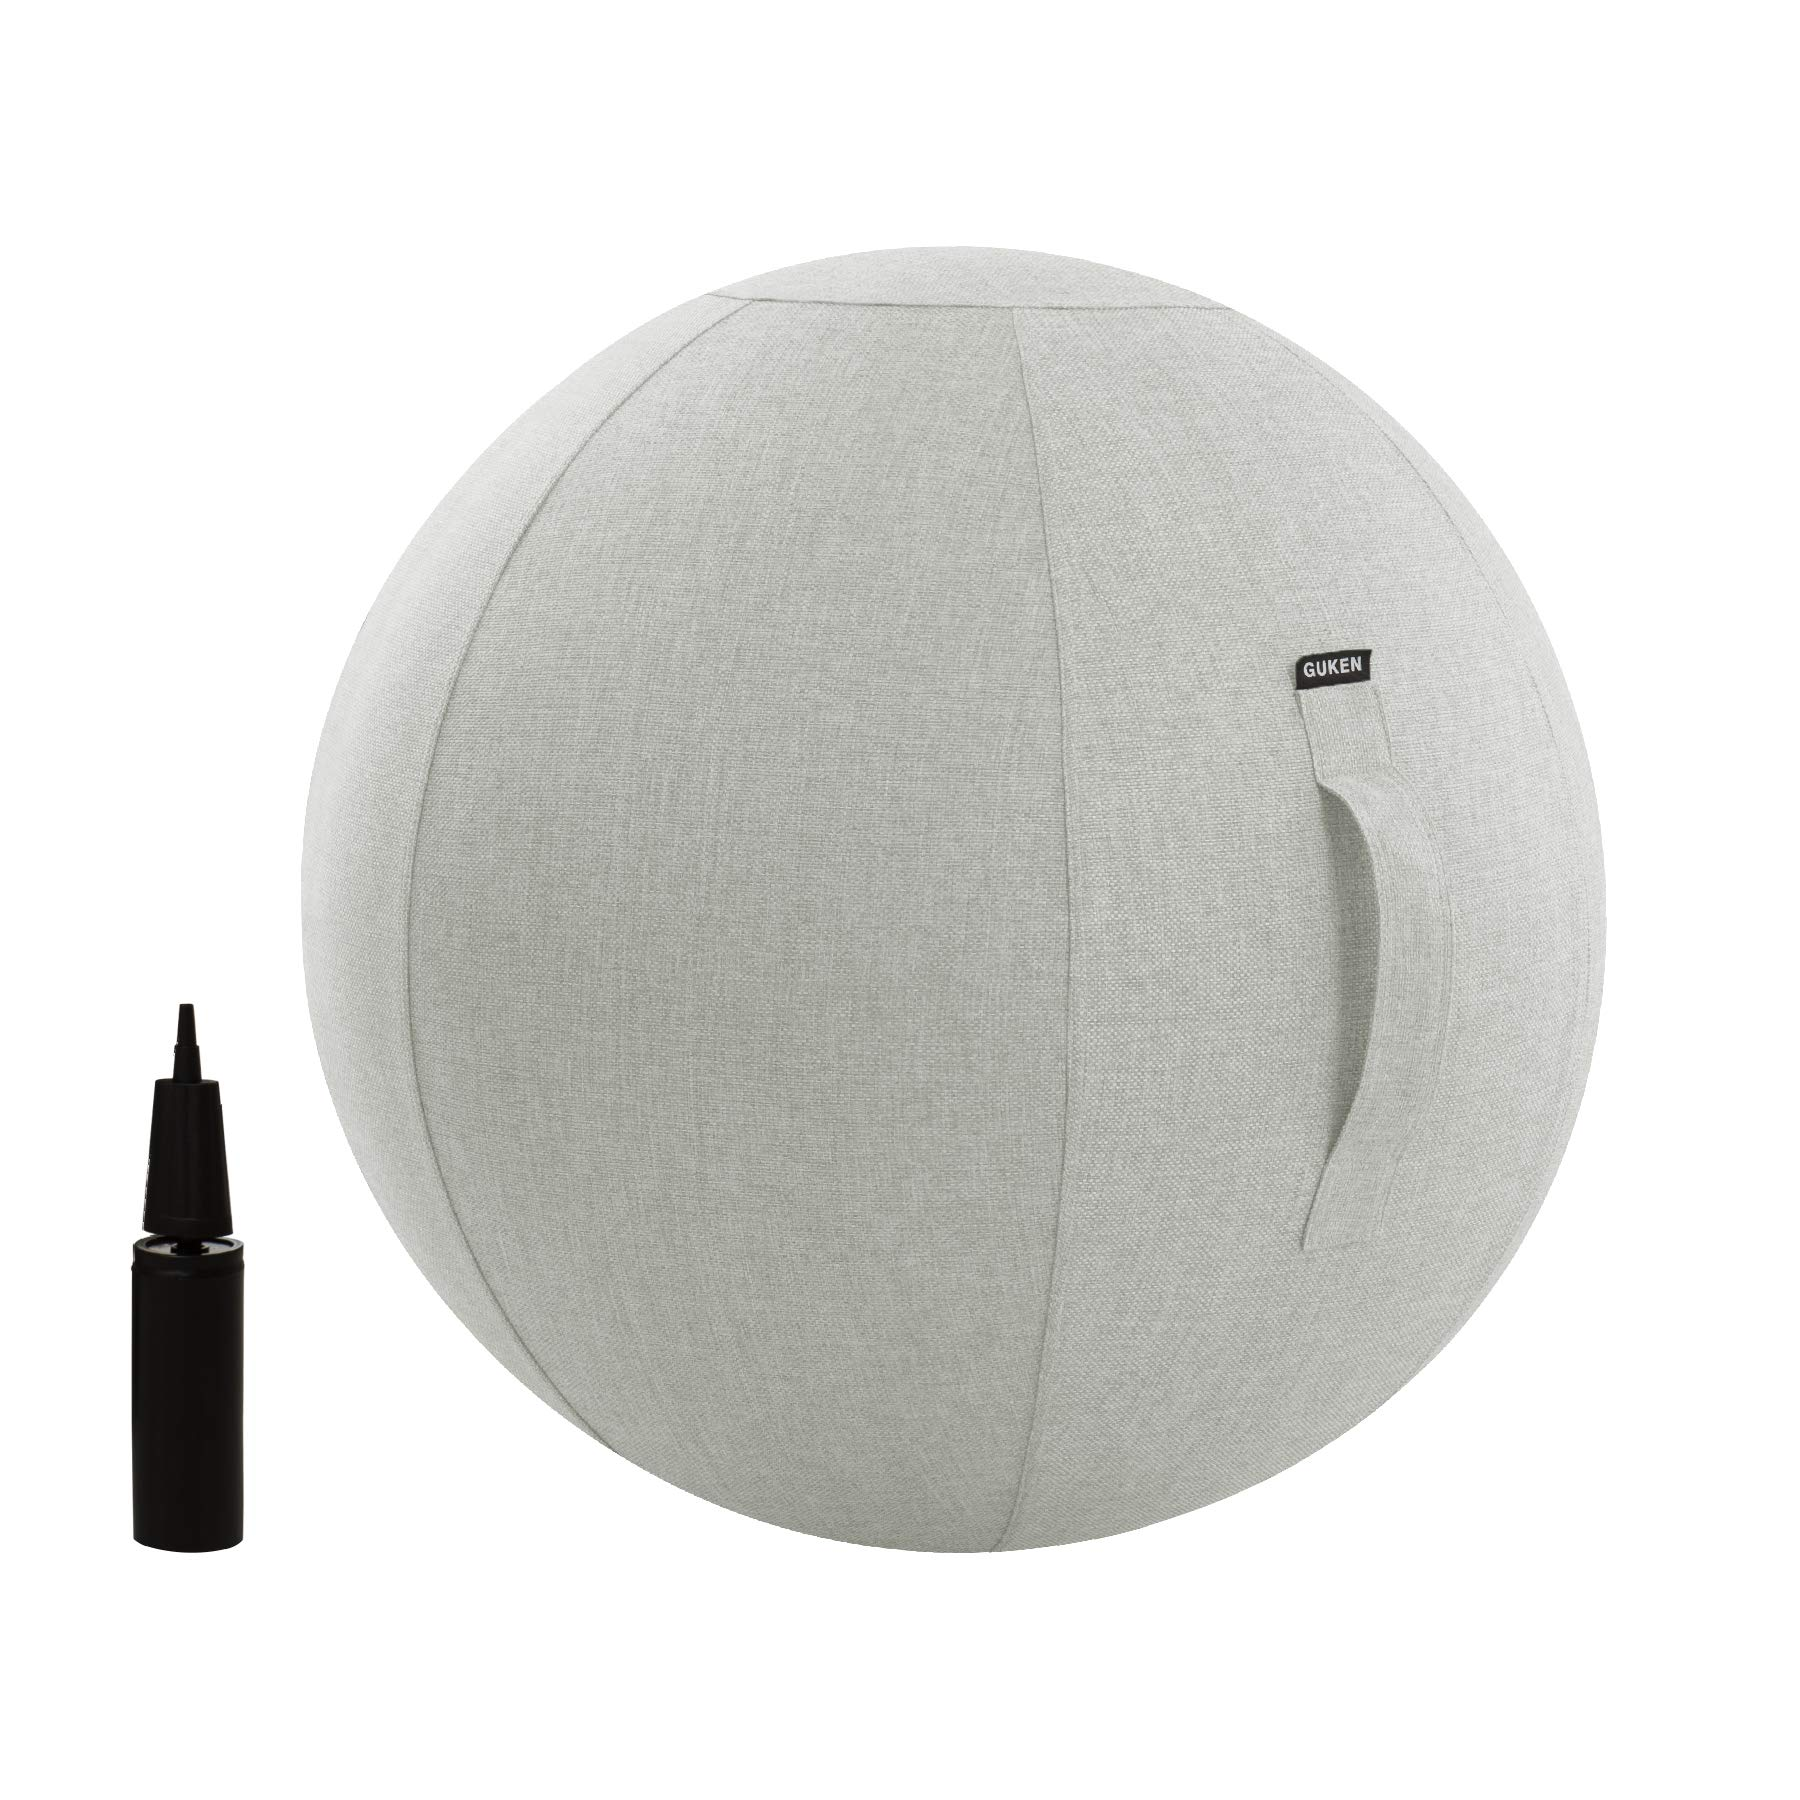 Exercise Ball (65cm Light Gray) Extra Thick Yoga Ball Chair,Yoga Ball Cover Anti-Burst Heavy Duty Stability Ball Supports 2200lbs, Fitness and Birthing Ball with Inflator and Handle(Office & Home & Gy